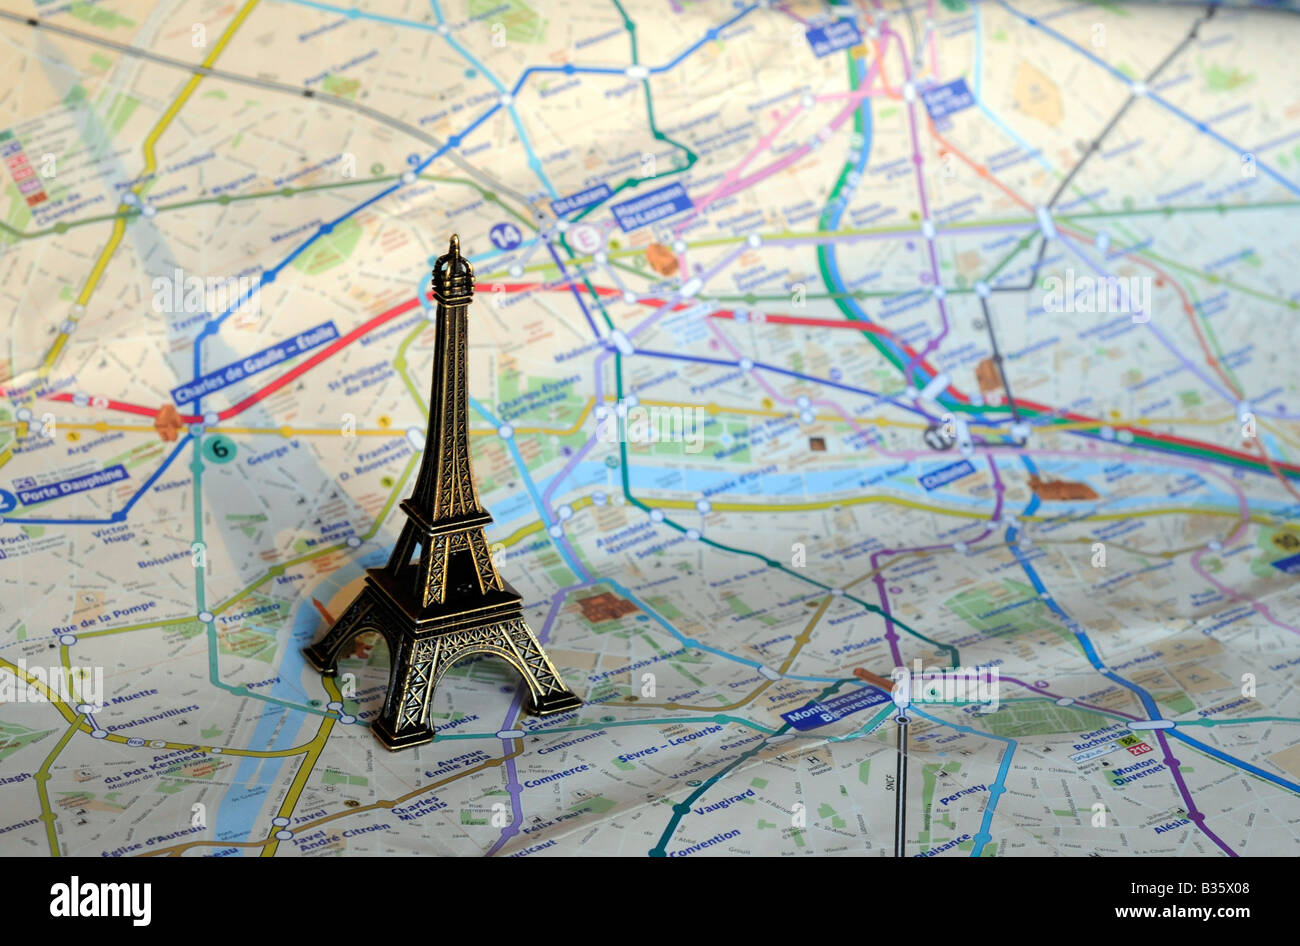 A Small Scale Model Of The Eiffel Tower Standing On A Map Of Paris